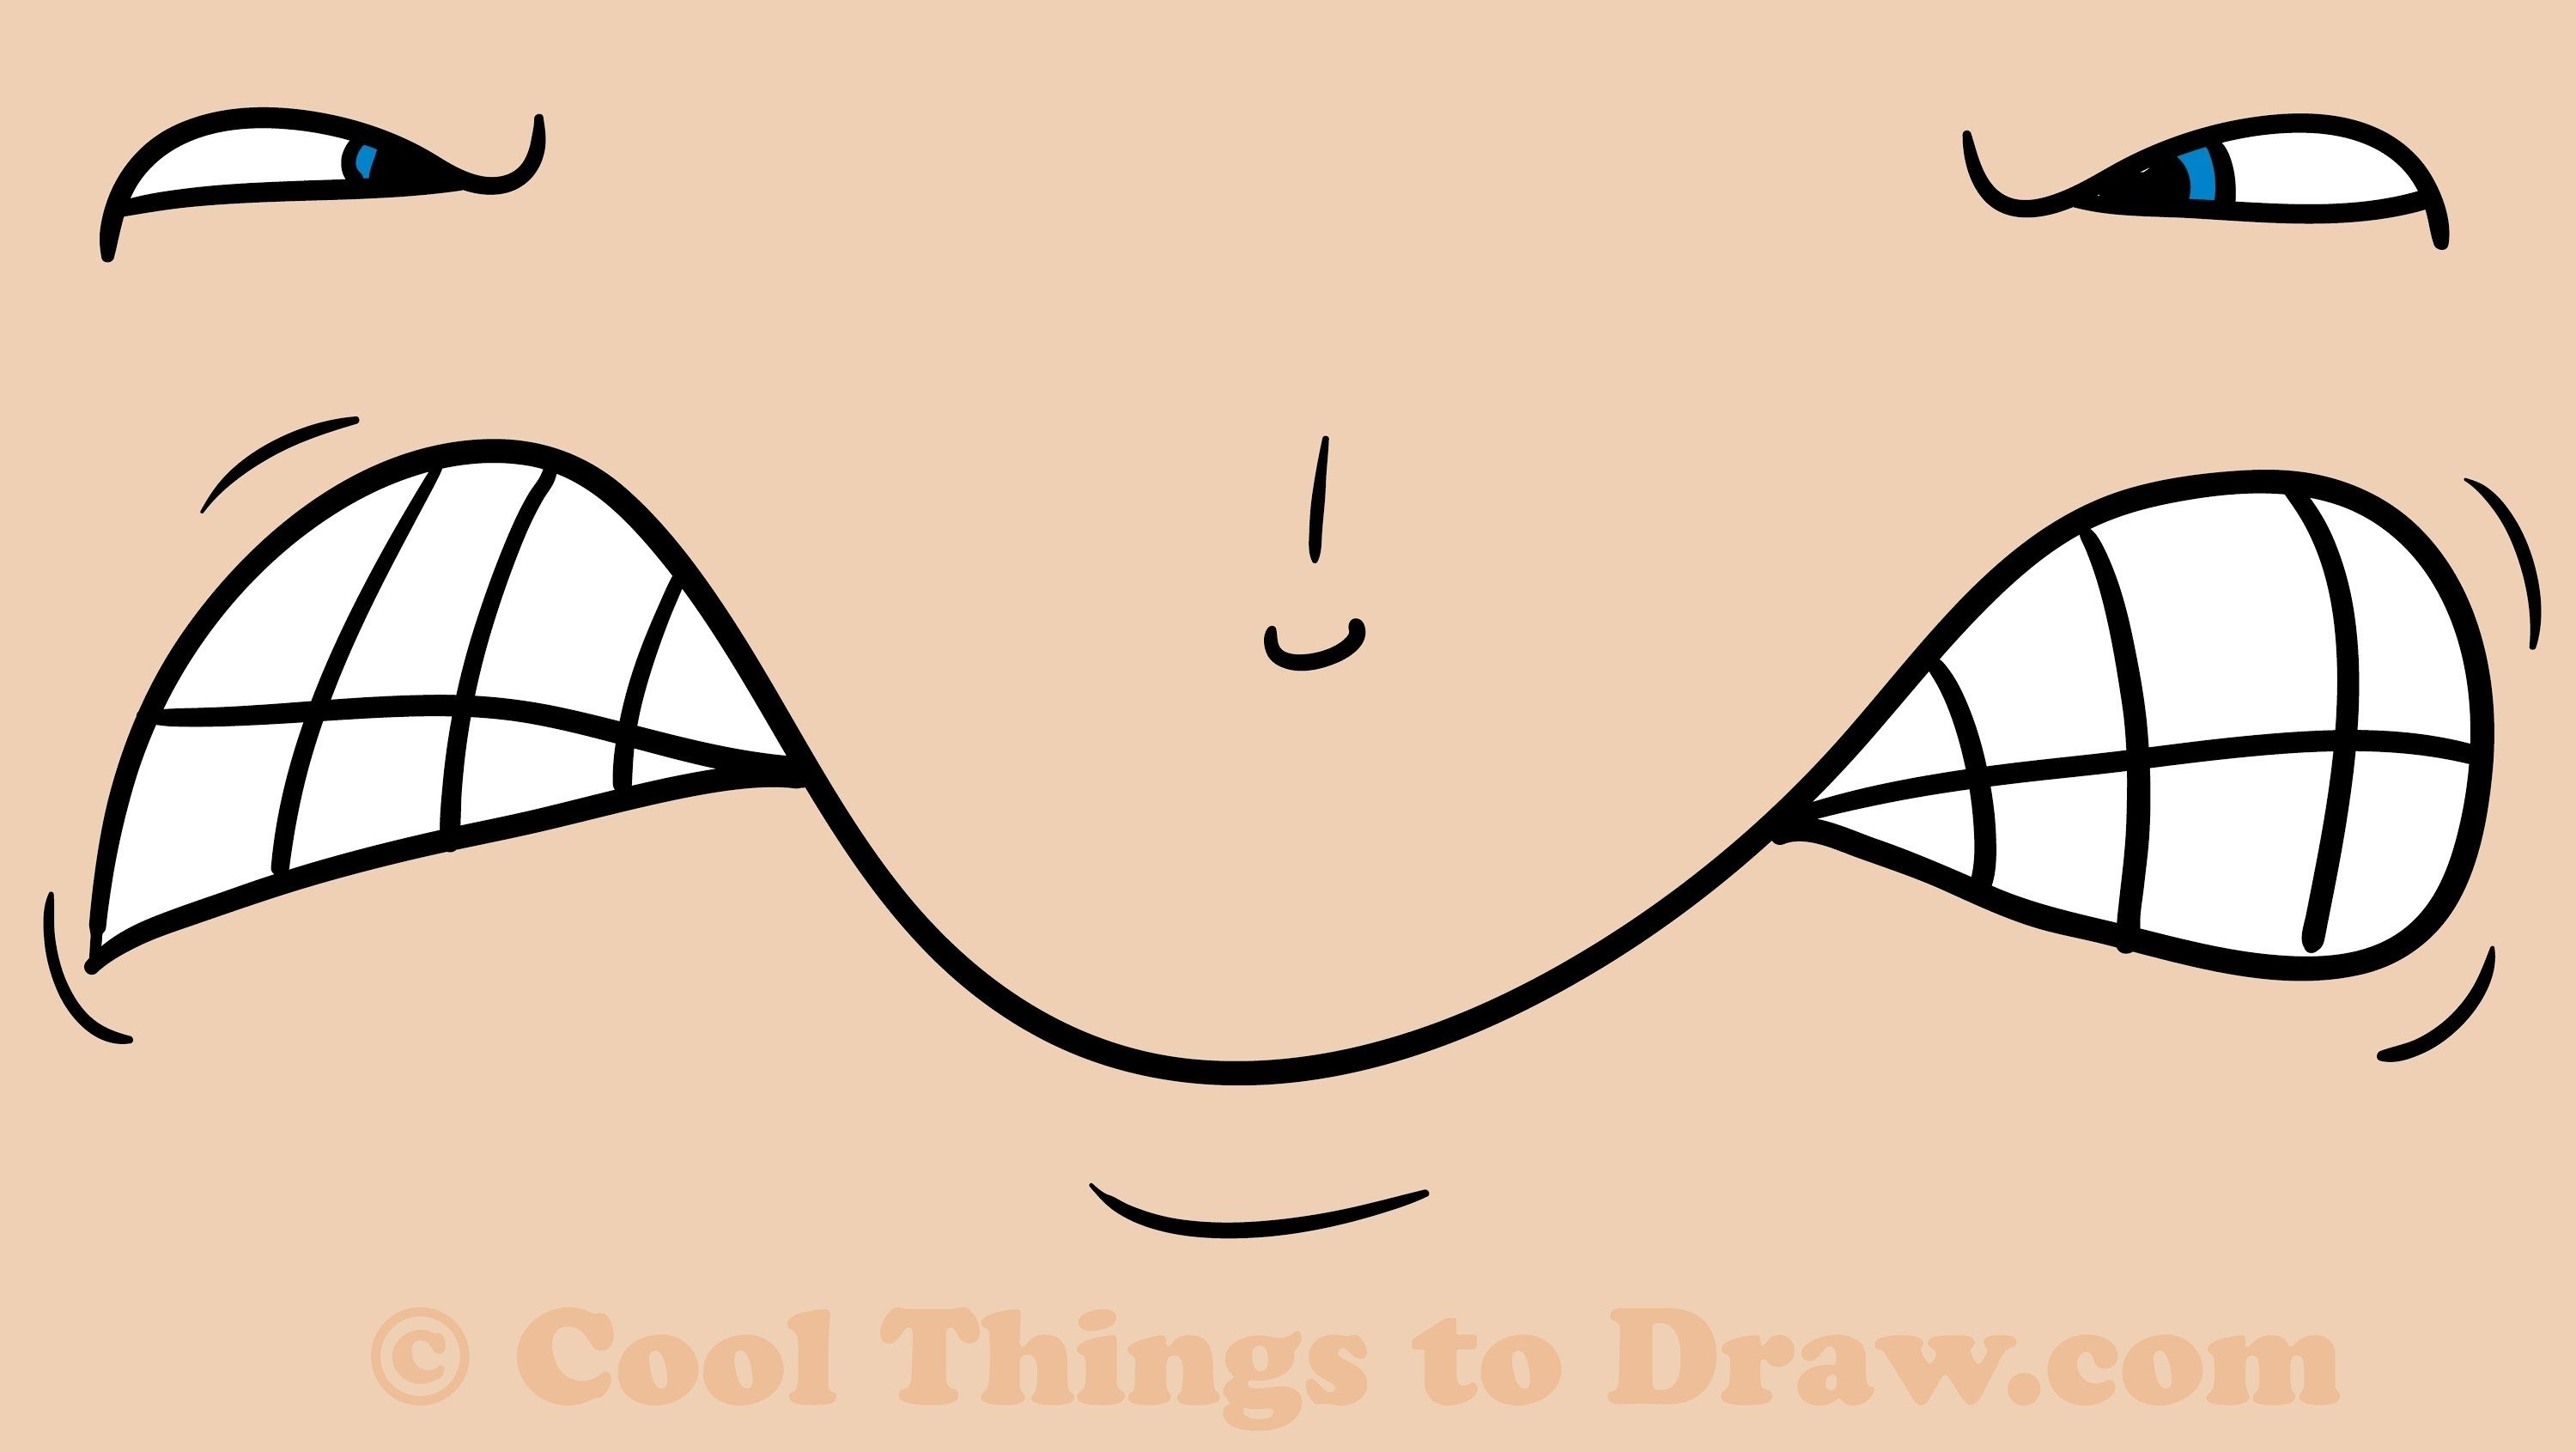 cool easy things to draw for kids who think they can't draw - youtube